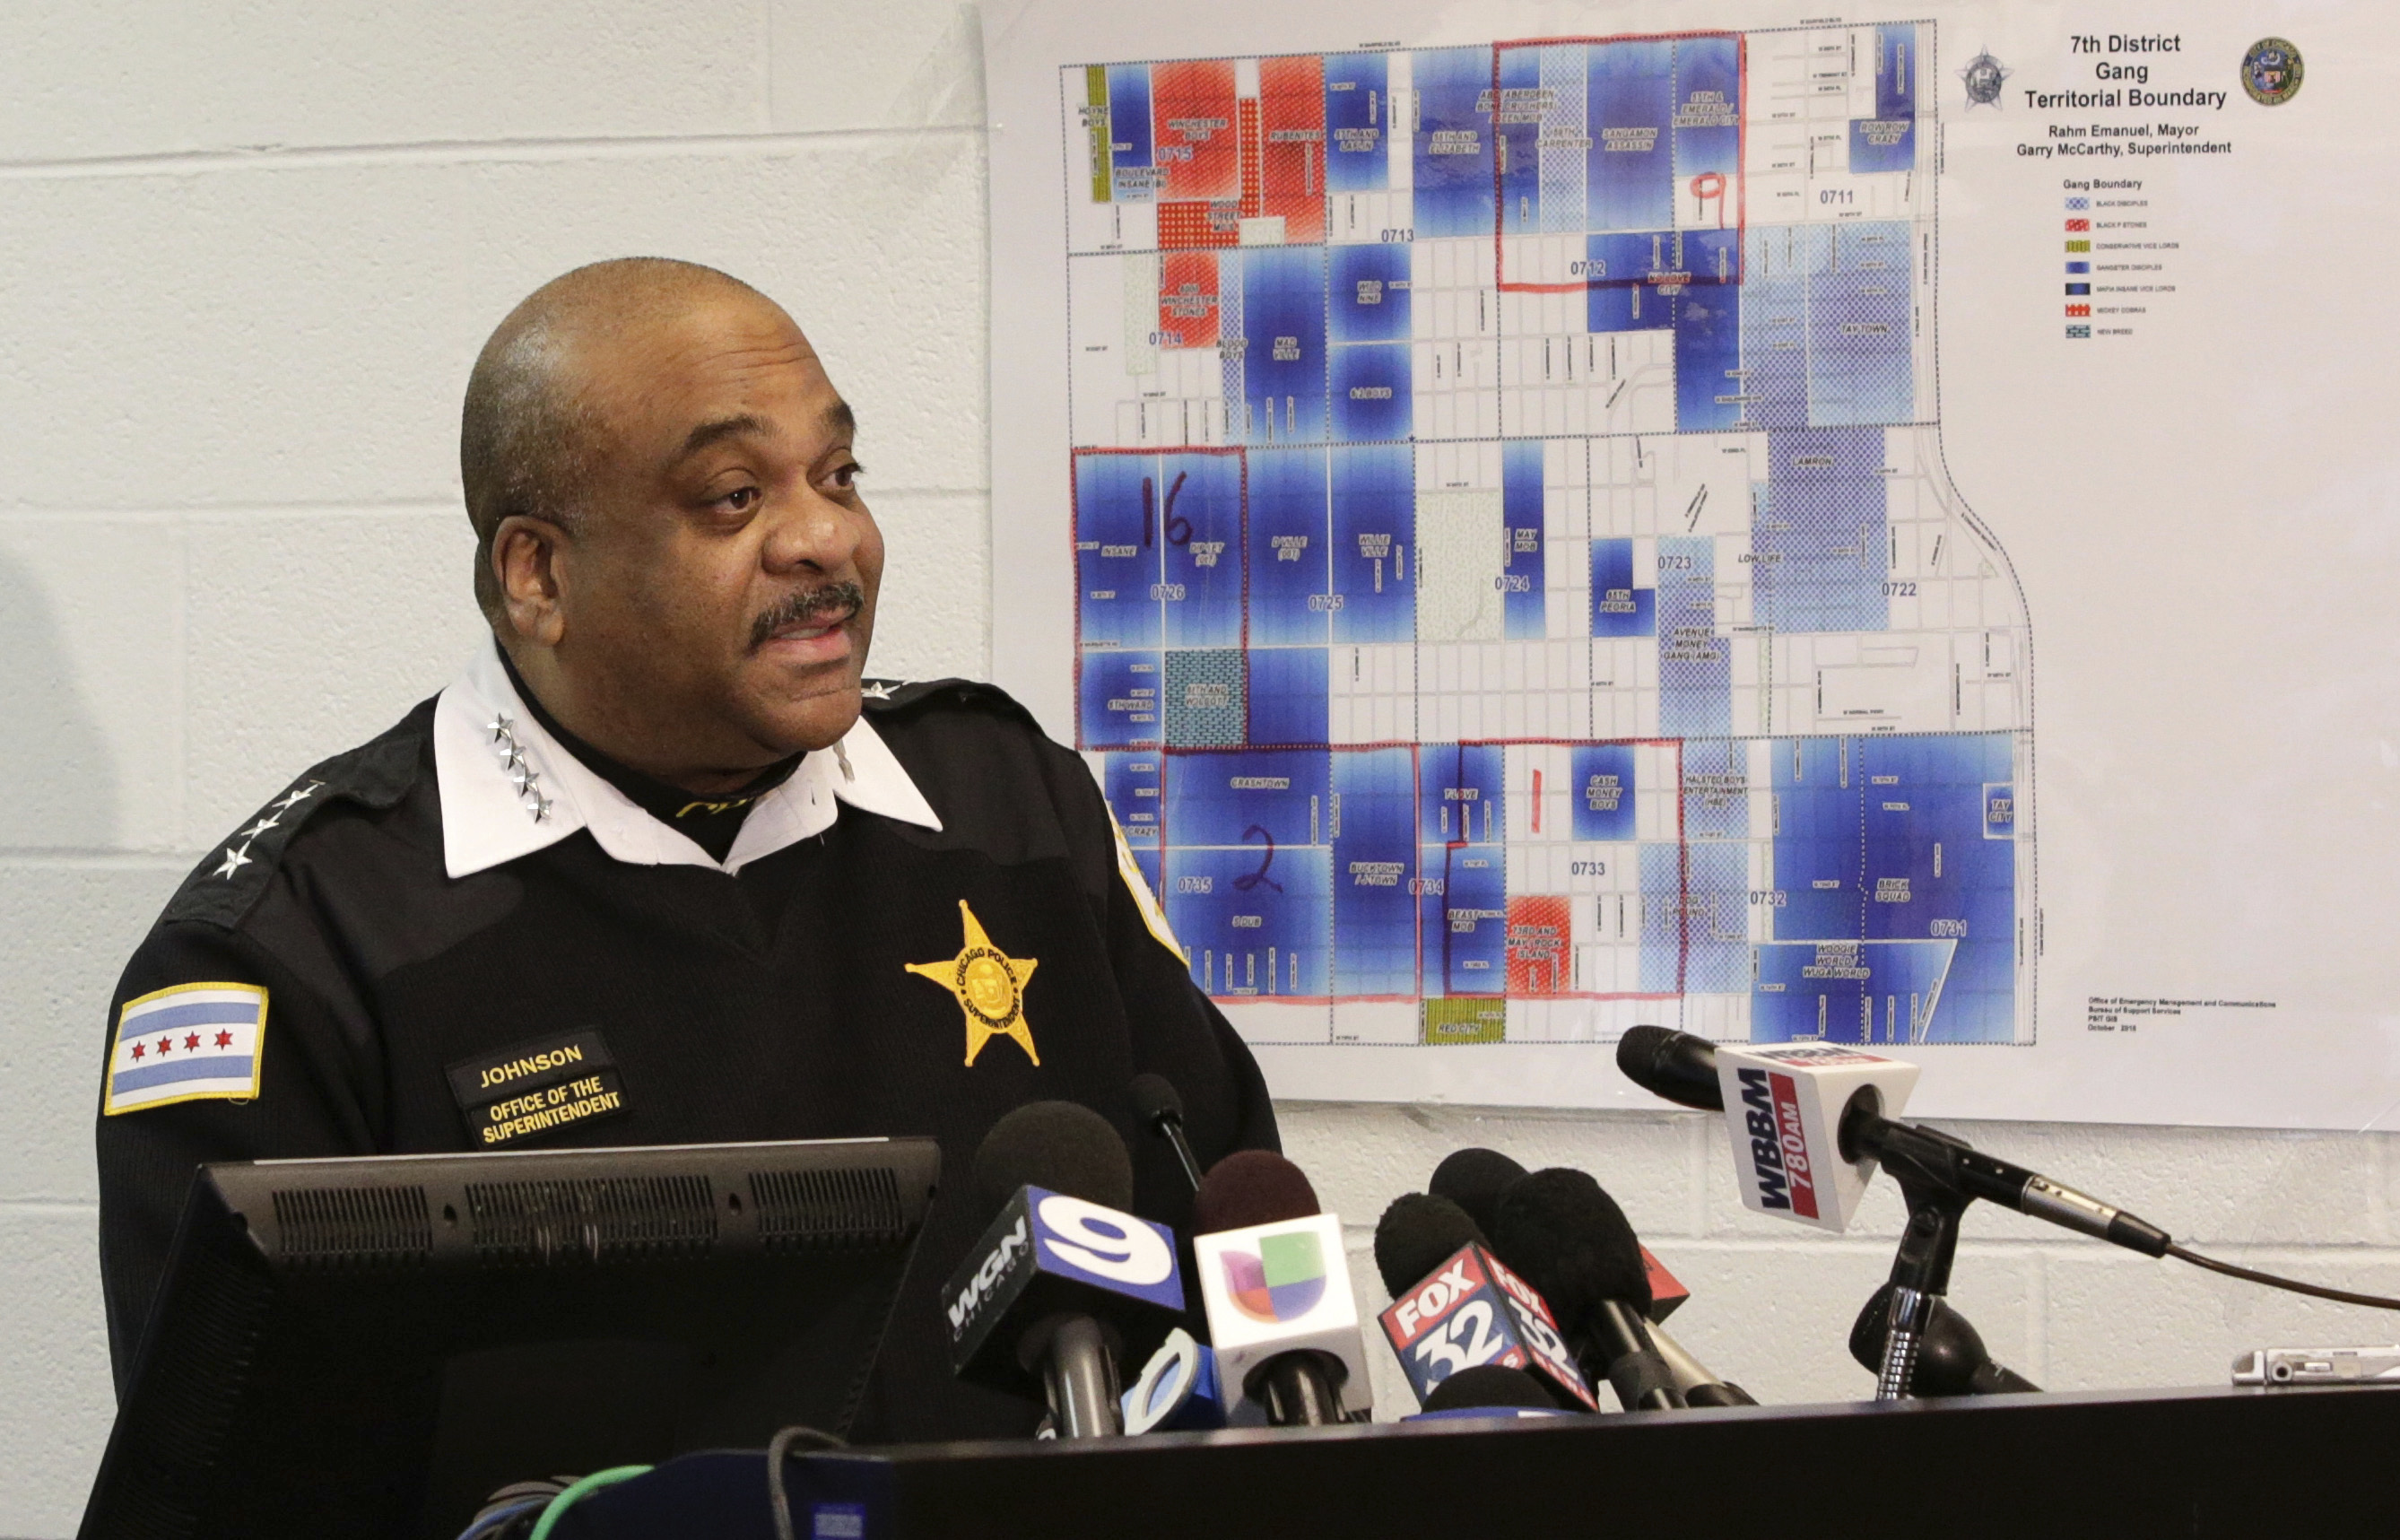 Chicago Police Superintendent Eddie Johnson at a news conference  in Chicago on Feb. 1, 2017. (AP Photo/Teresa Crawford)